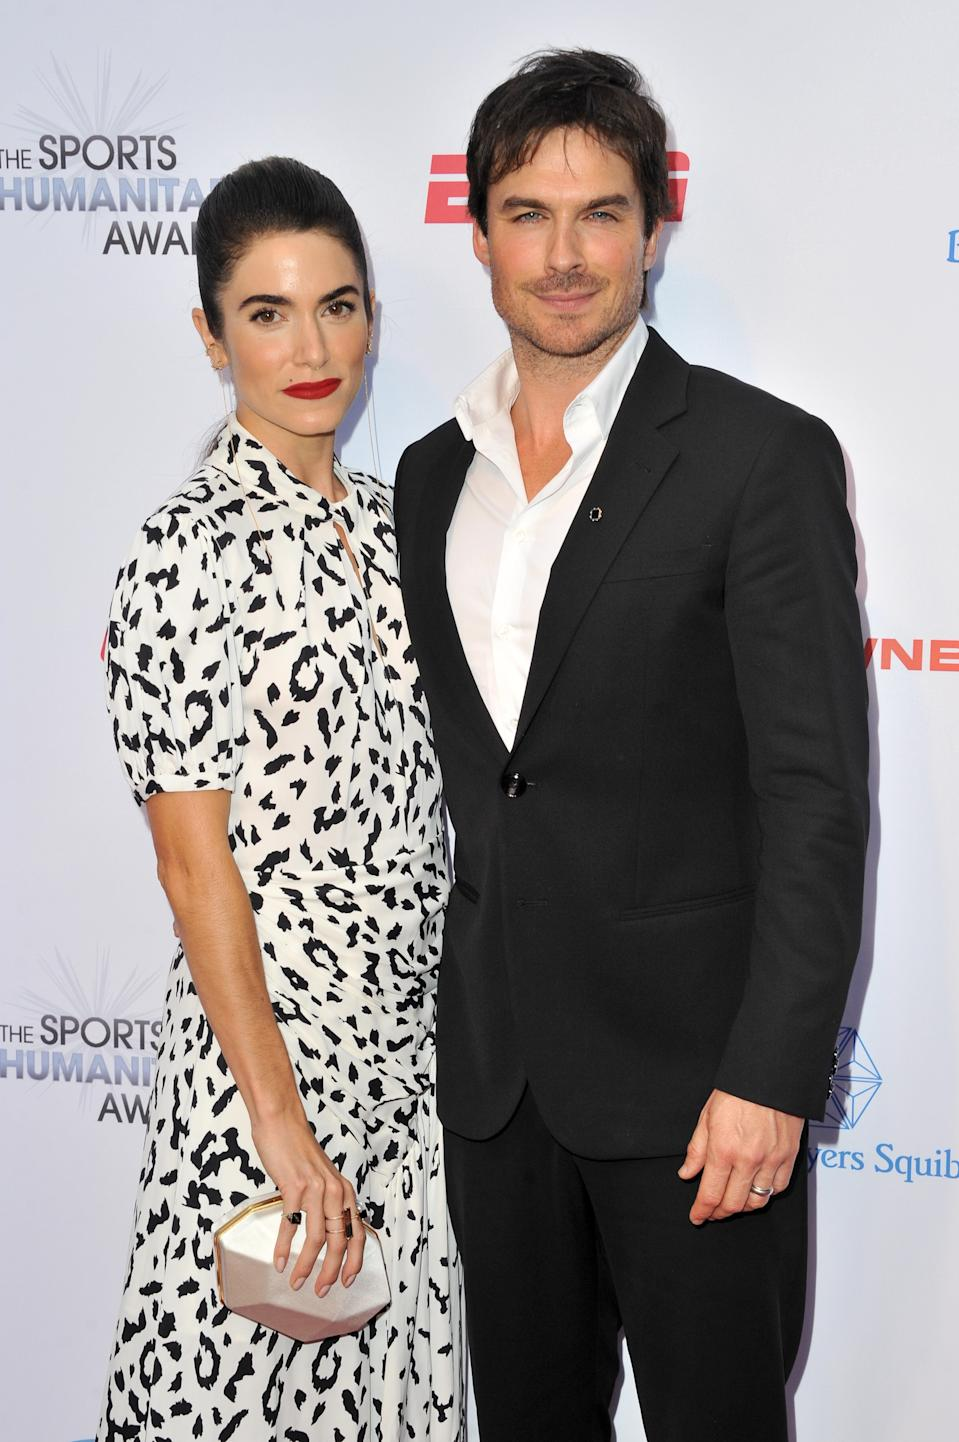 A photo of Nikki Reed and Ian Somerhalder at the 5th annual Sports Humanitarian Awards presented by ESPN at The Novo Theater at L.A. Live on July 09, 2019 in Los Angeles, California.